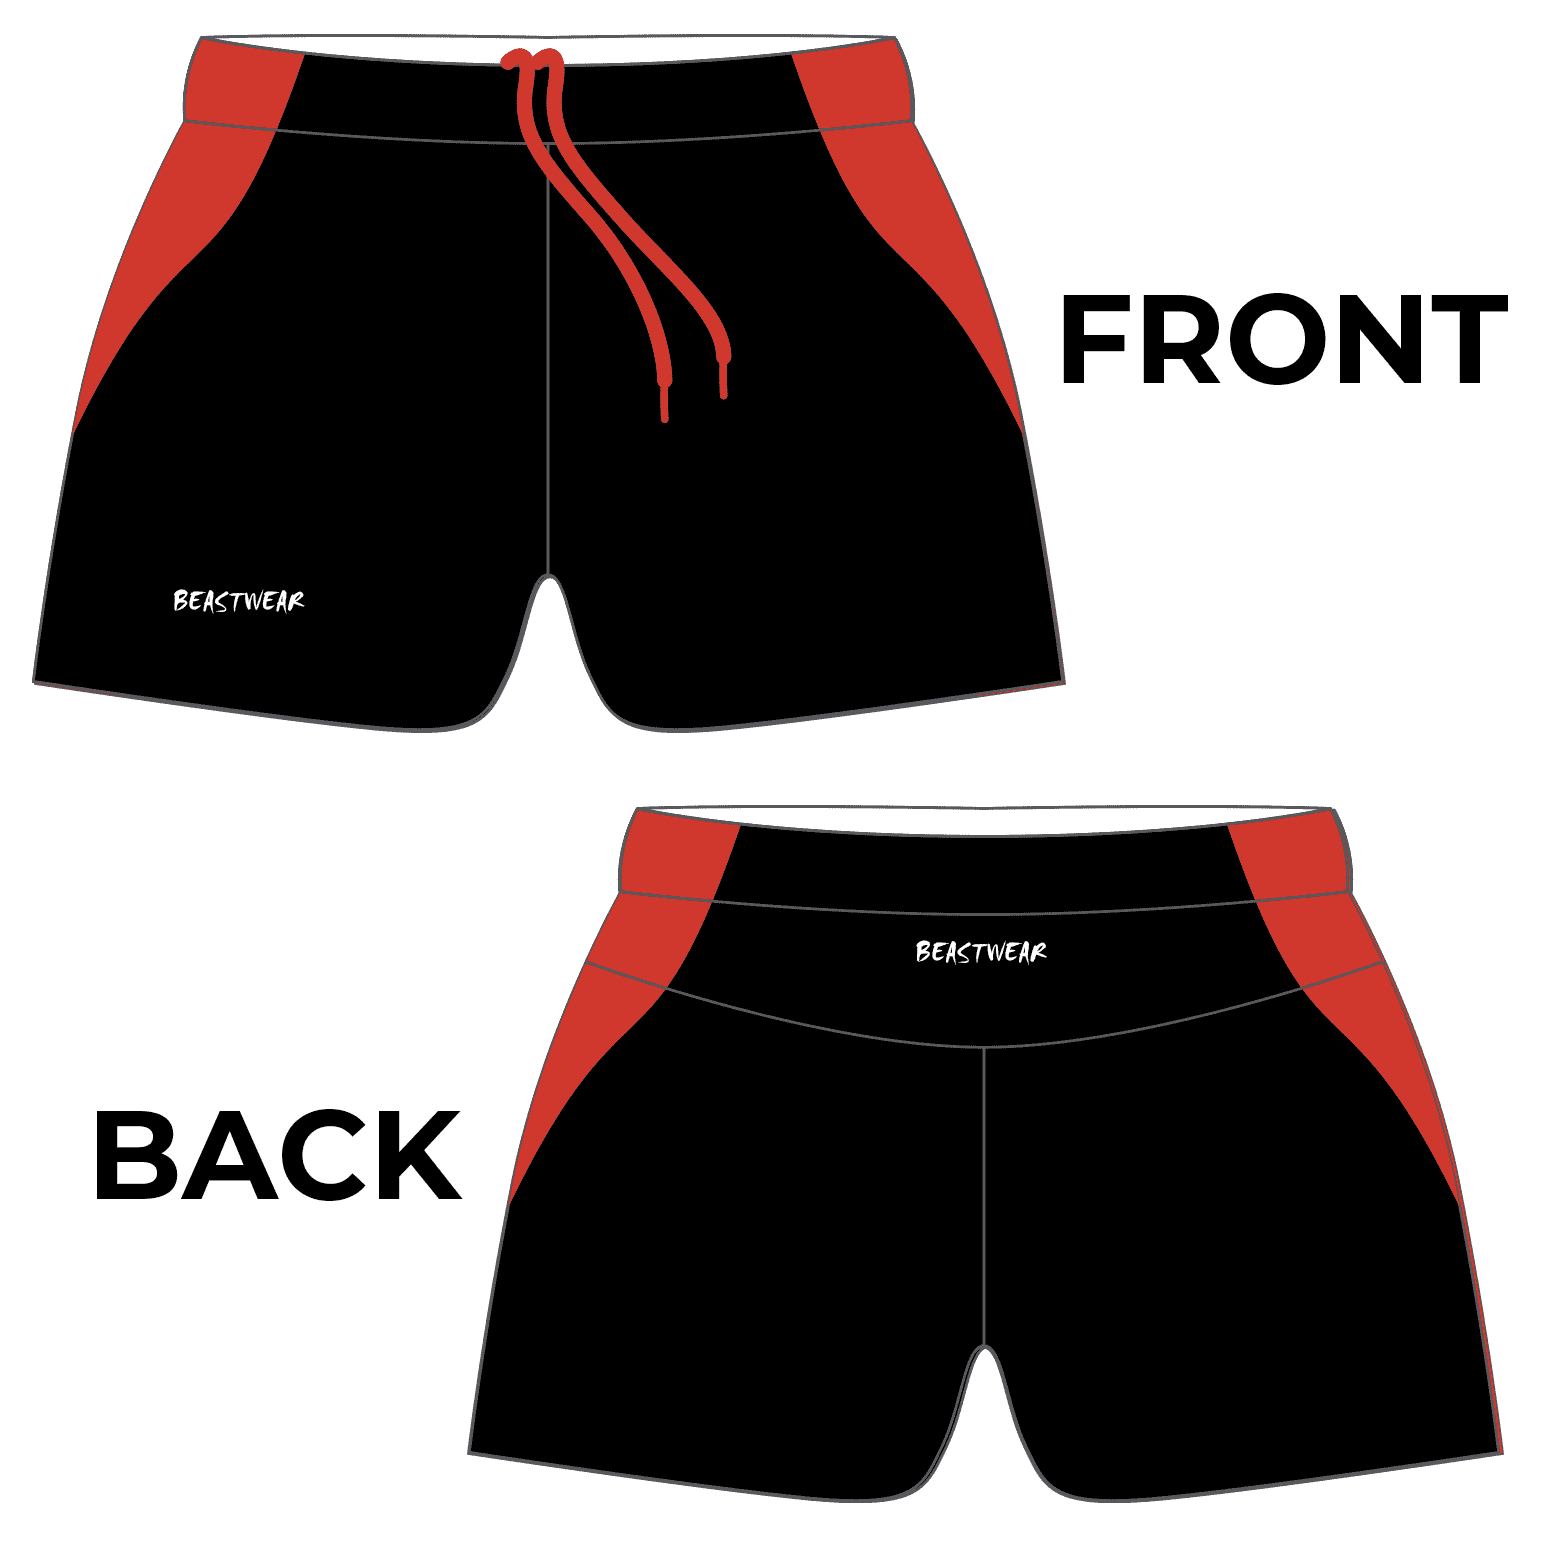 Limited Edition Shorts (Design 2) - Warby Motorsports World Record